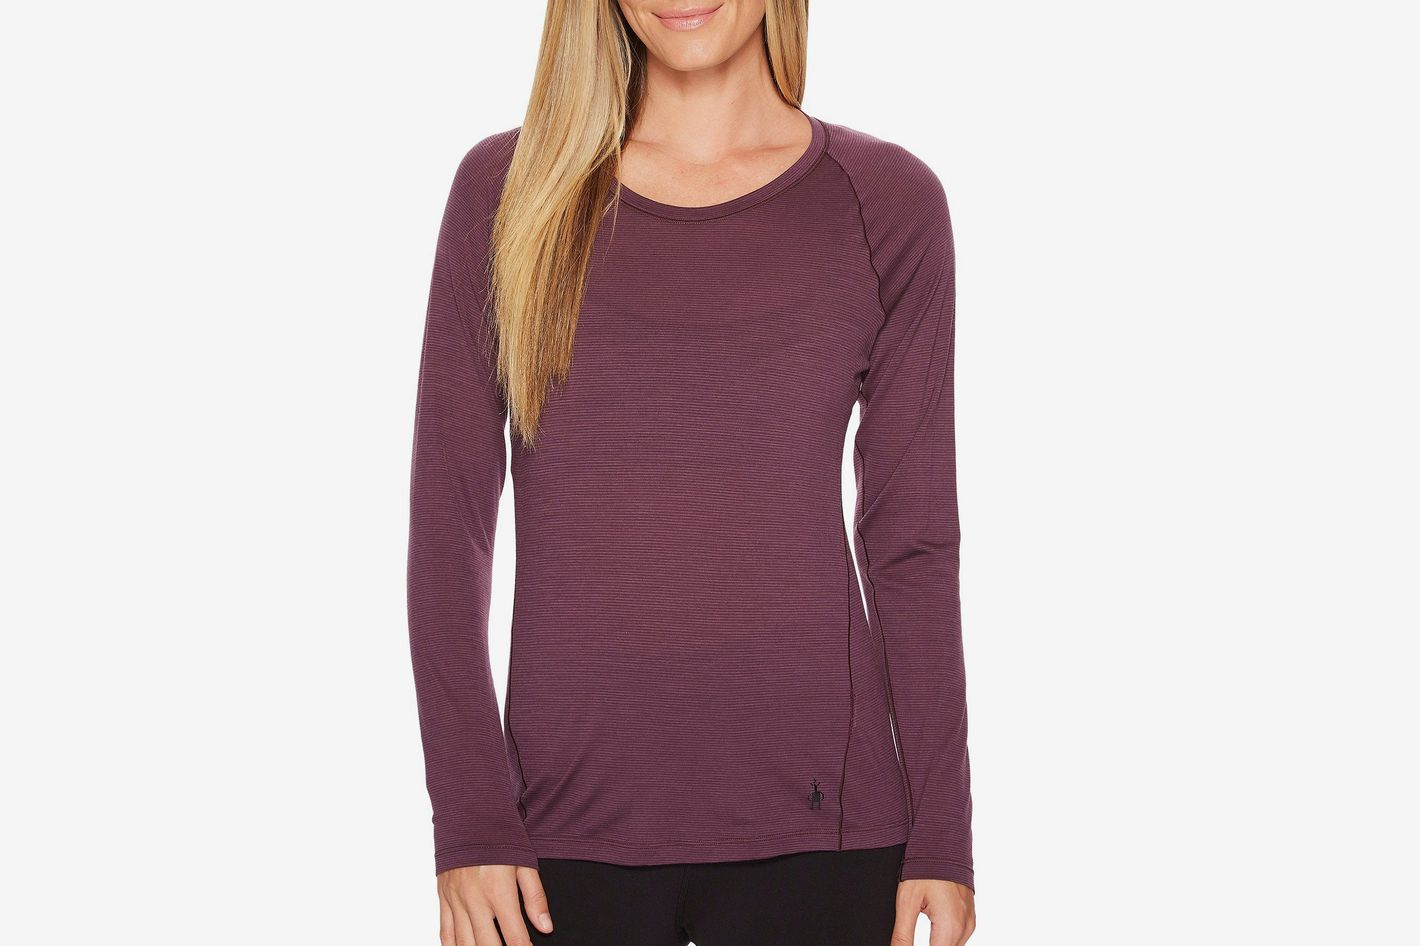 Smartwool Women's Merino 150 Baselayer Pattern Long Sleeve